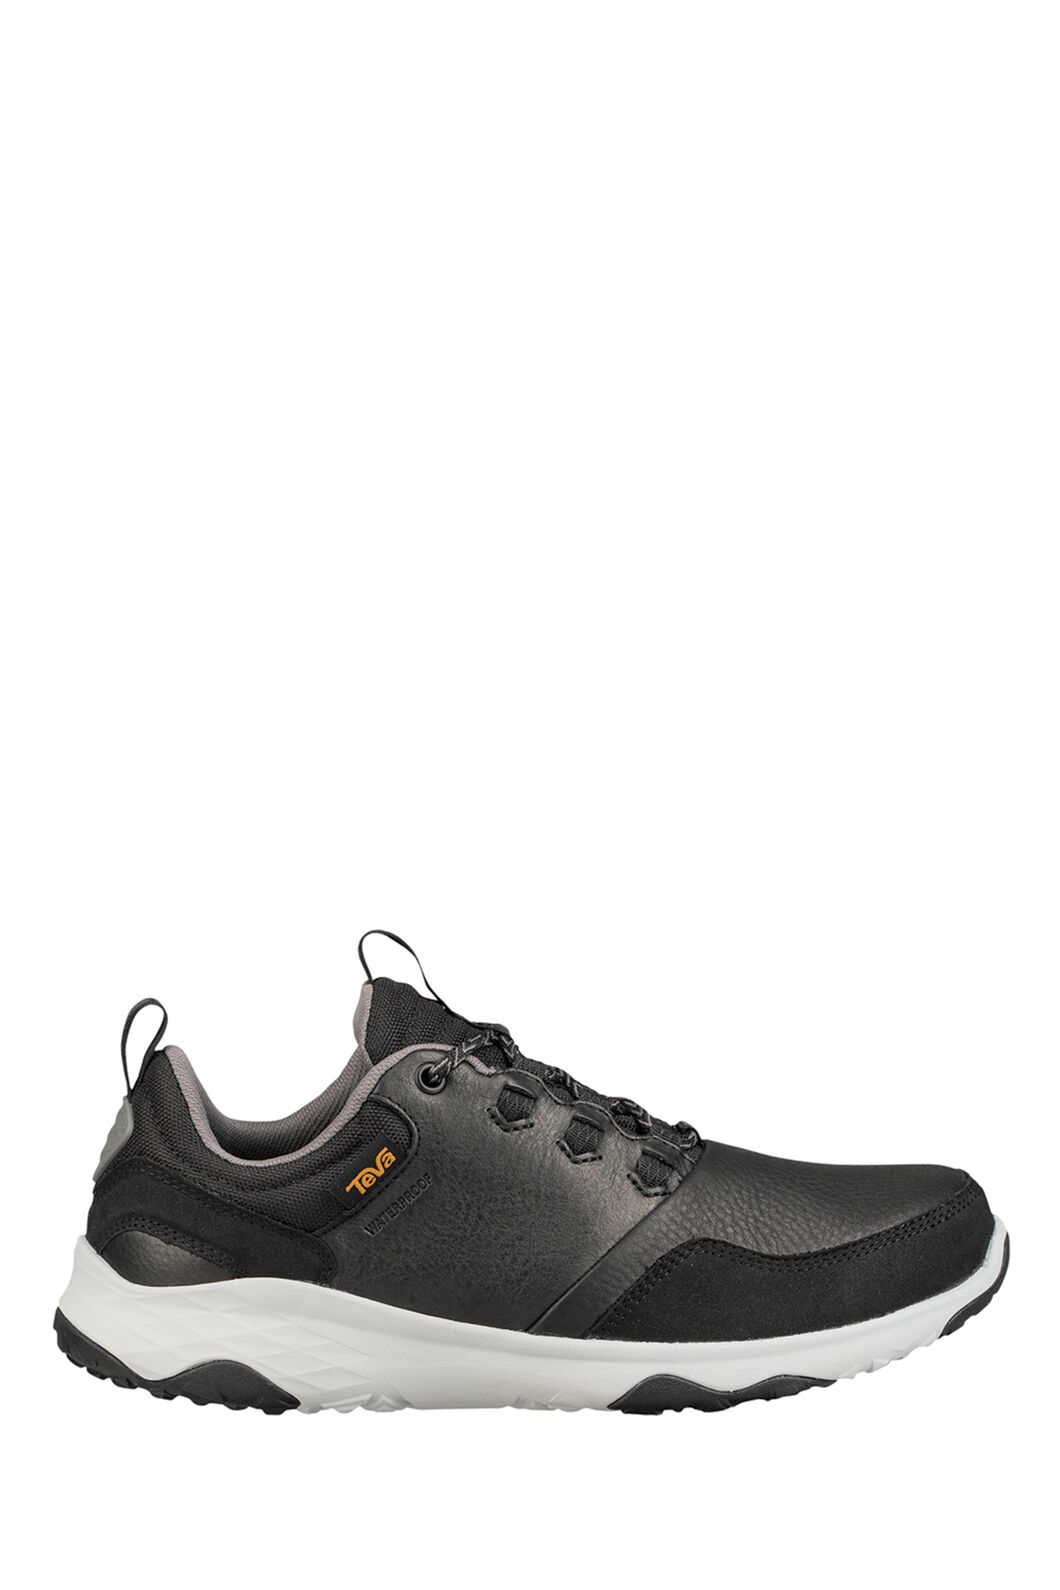 Teva Arrowood 2 Low WP Shoes — Men's, Black, hi-res